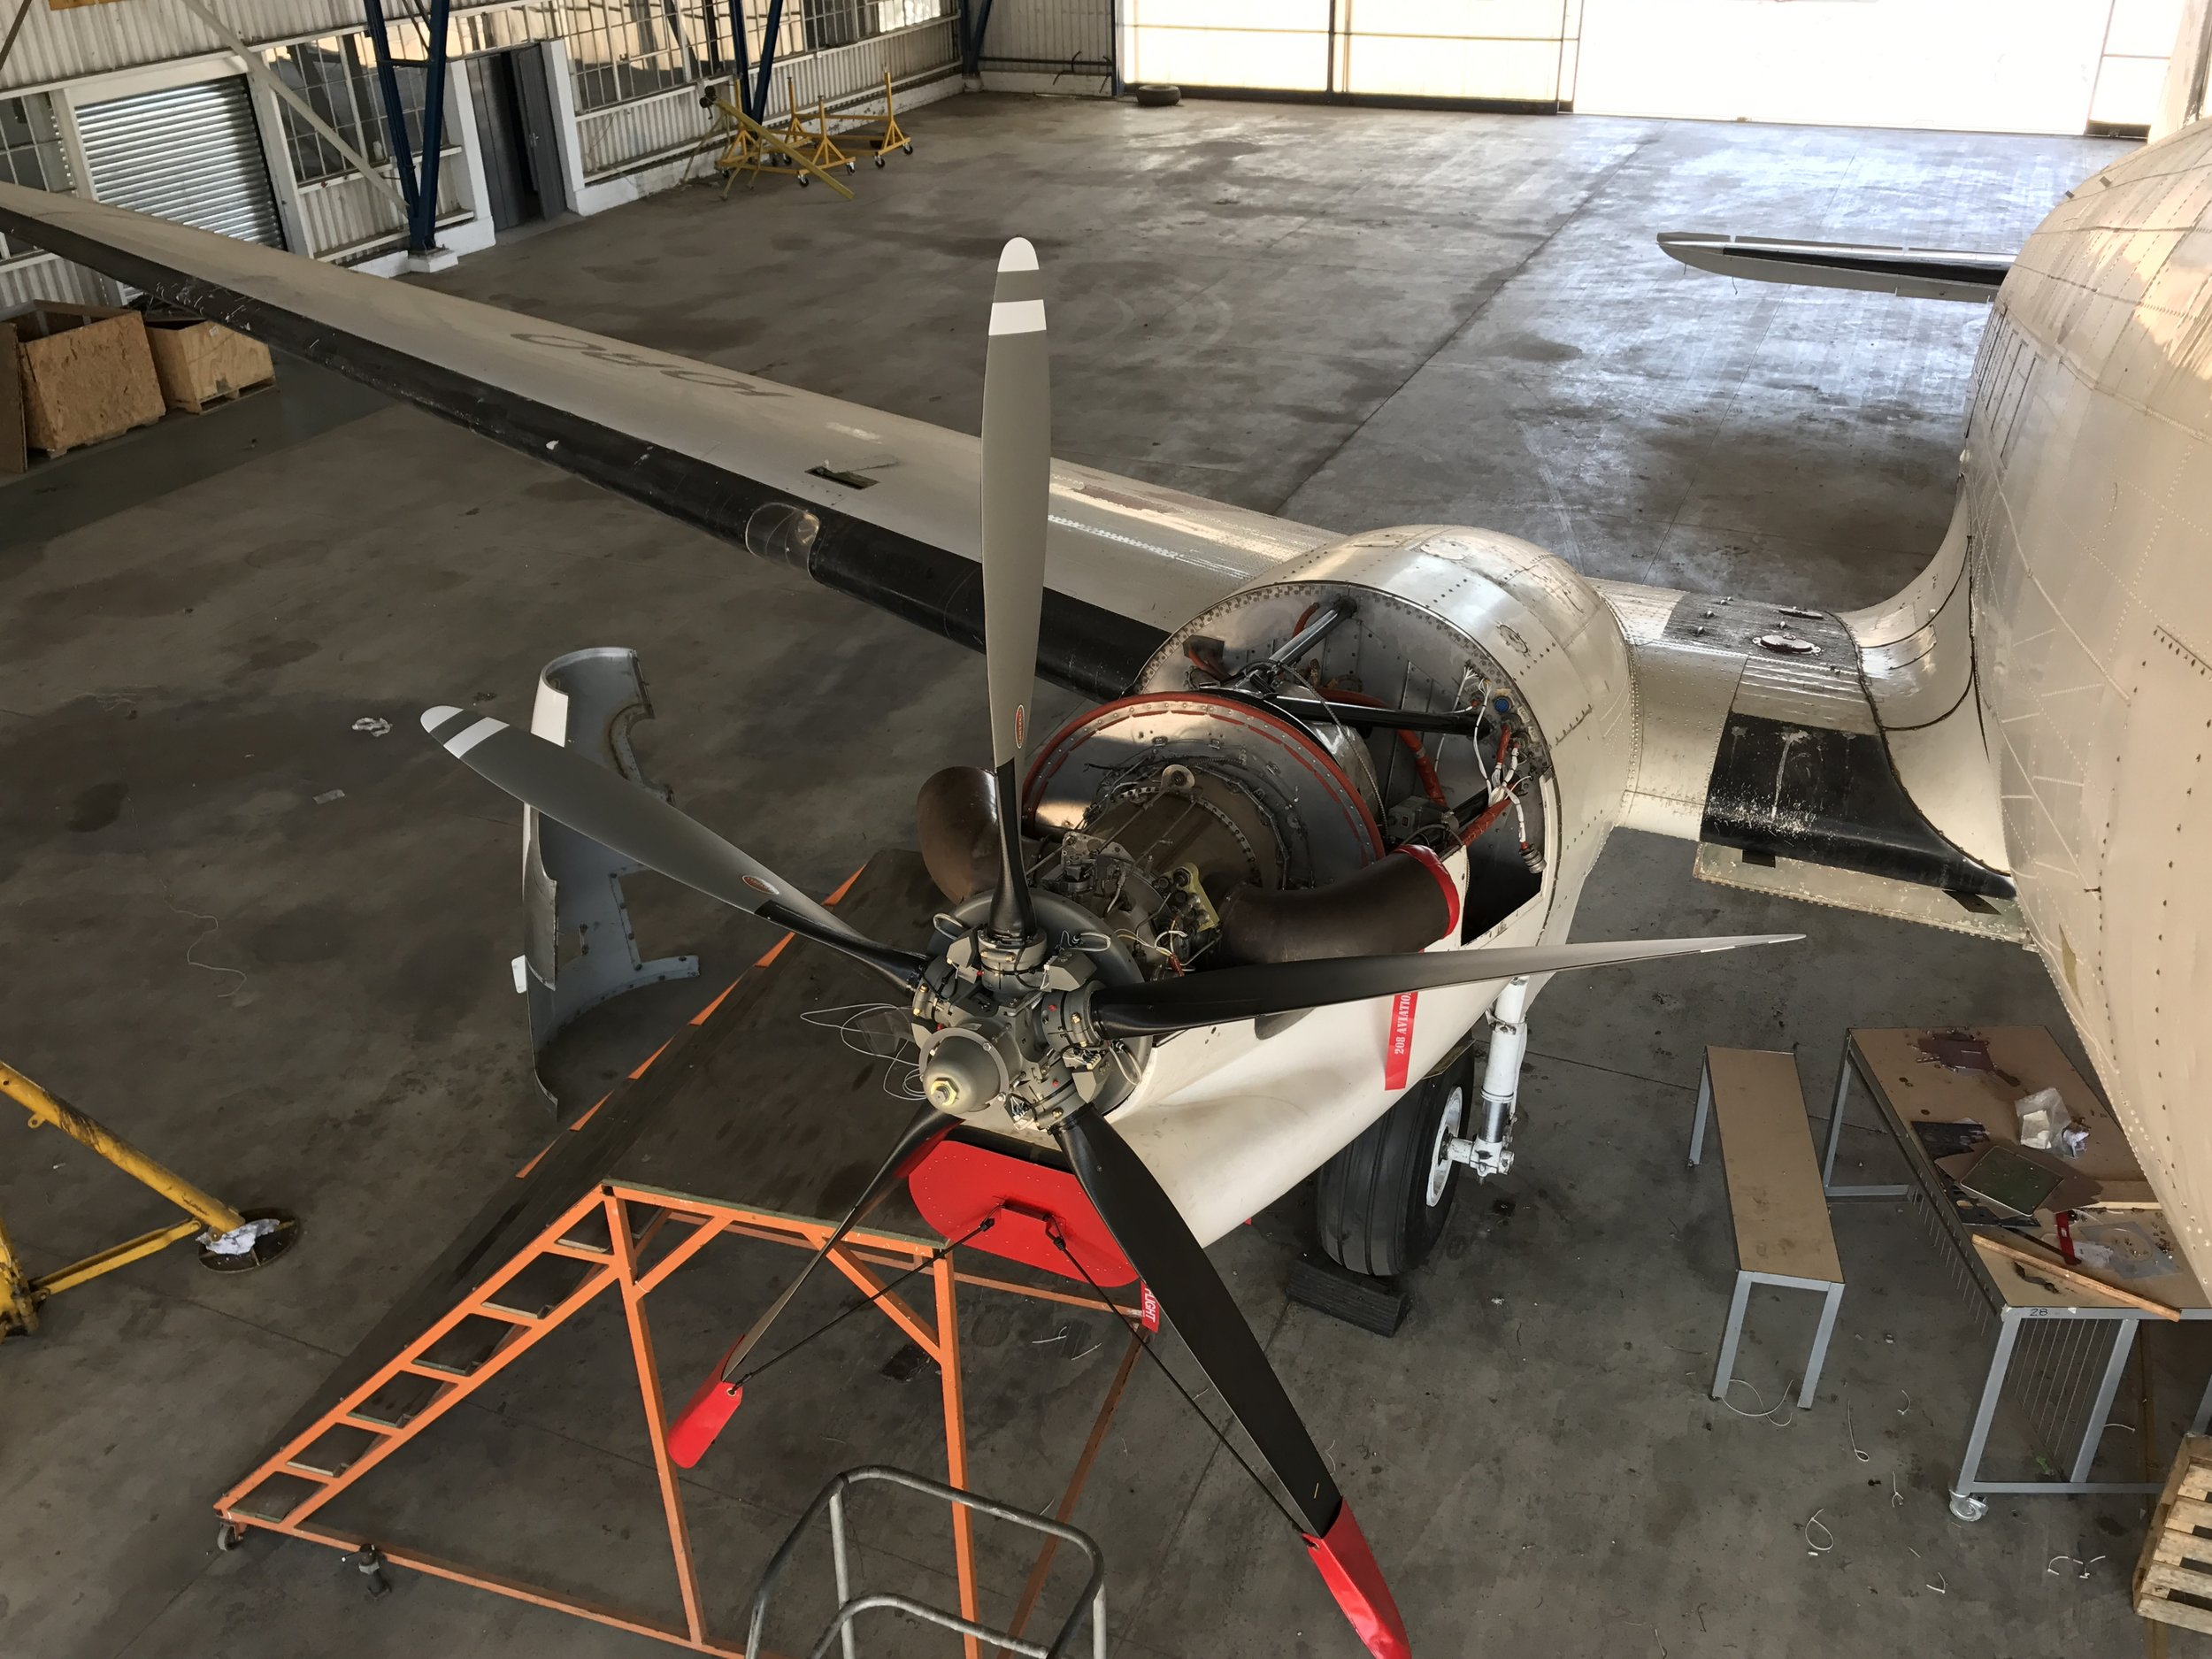 Nearly compete in a hangar in South Africa.